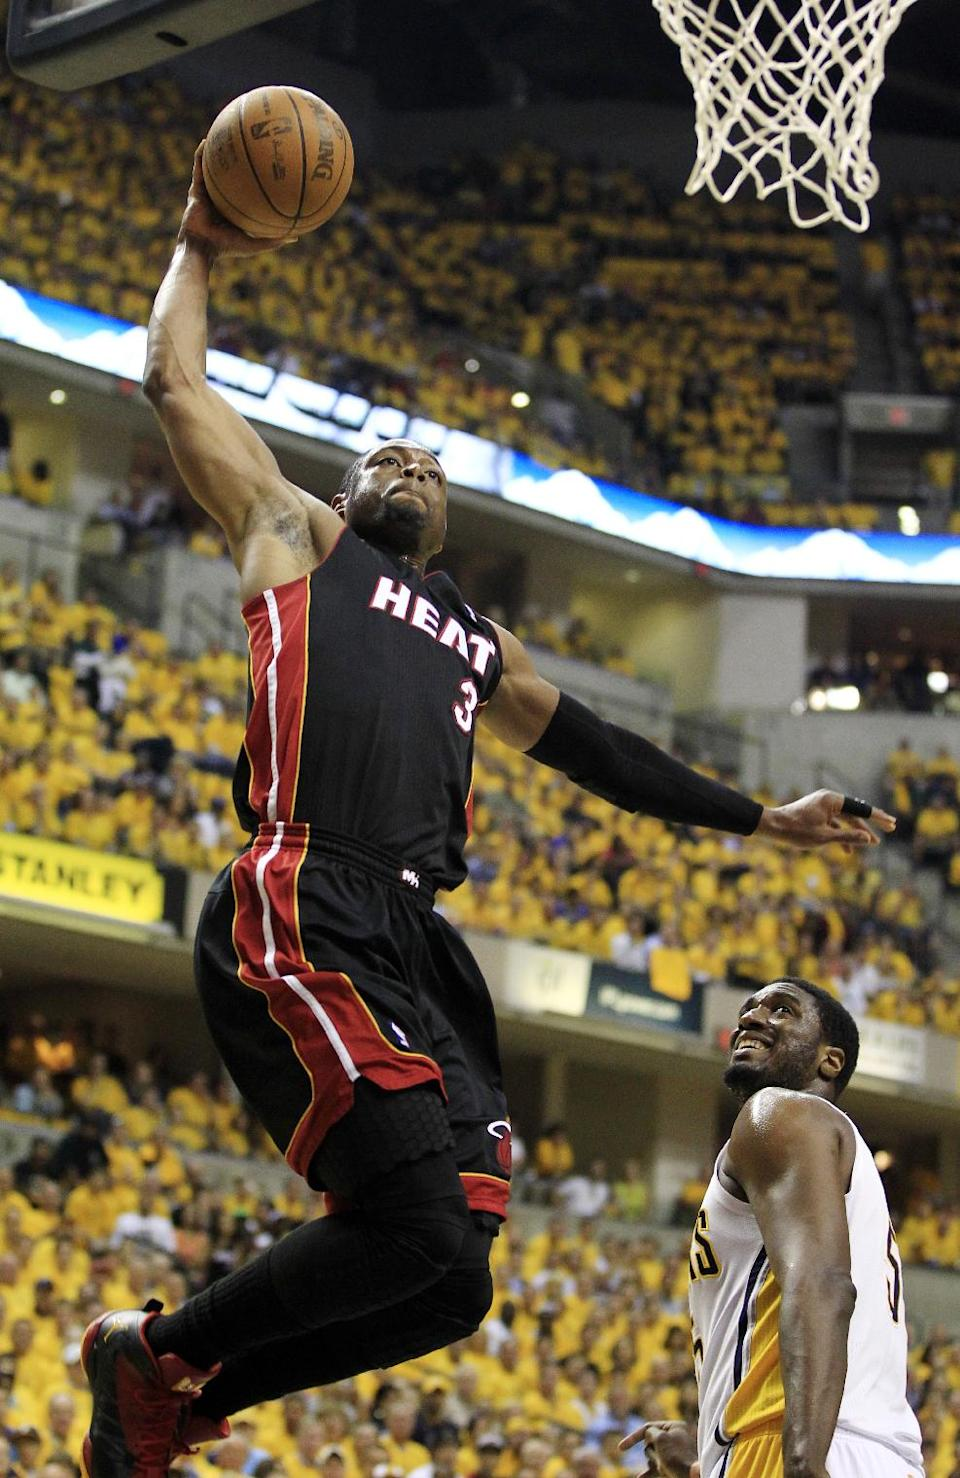 Miami Heat's Dwyane Wade dunks as Indiana Pacers' Roy Hibbert watches during the first half of Game 6 of their NBA basketball Eastern Conference semifinal playoff series, Thursday, May 24, 2012, in Indianapolis. (AP Photo/Darron Cummings)